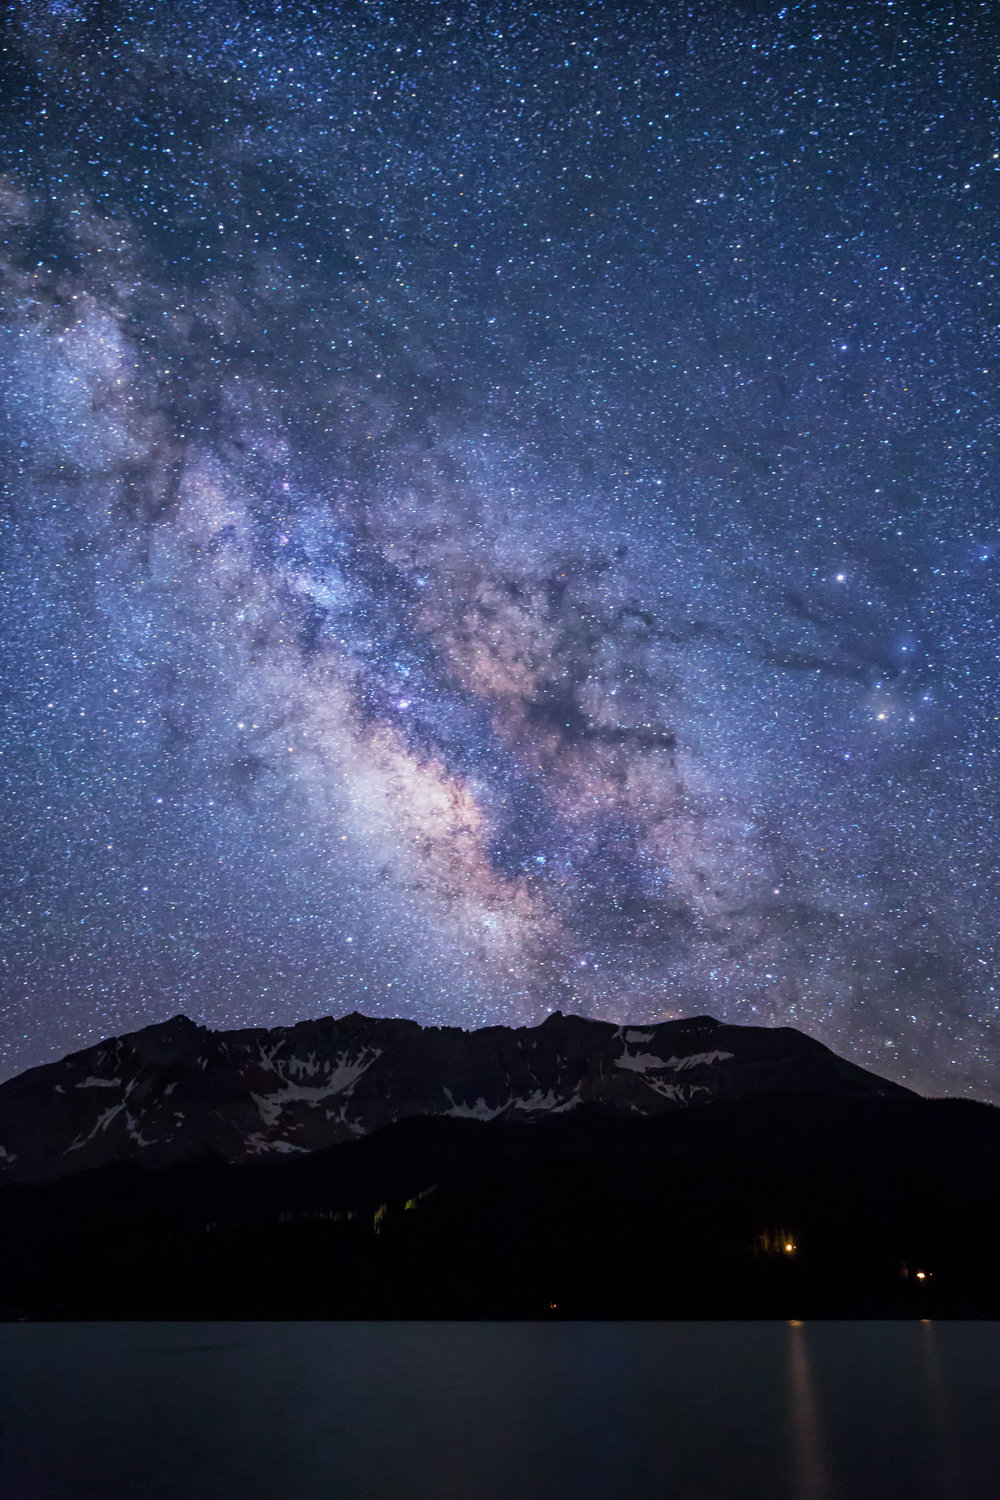 Trout Lake Milky Way (click to enlarge)